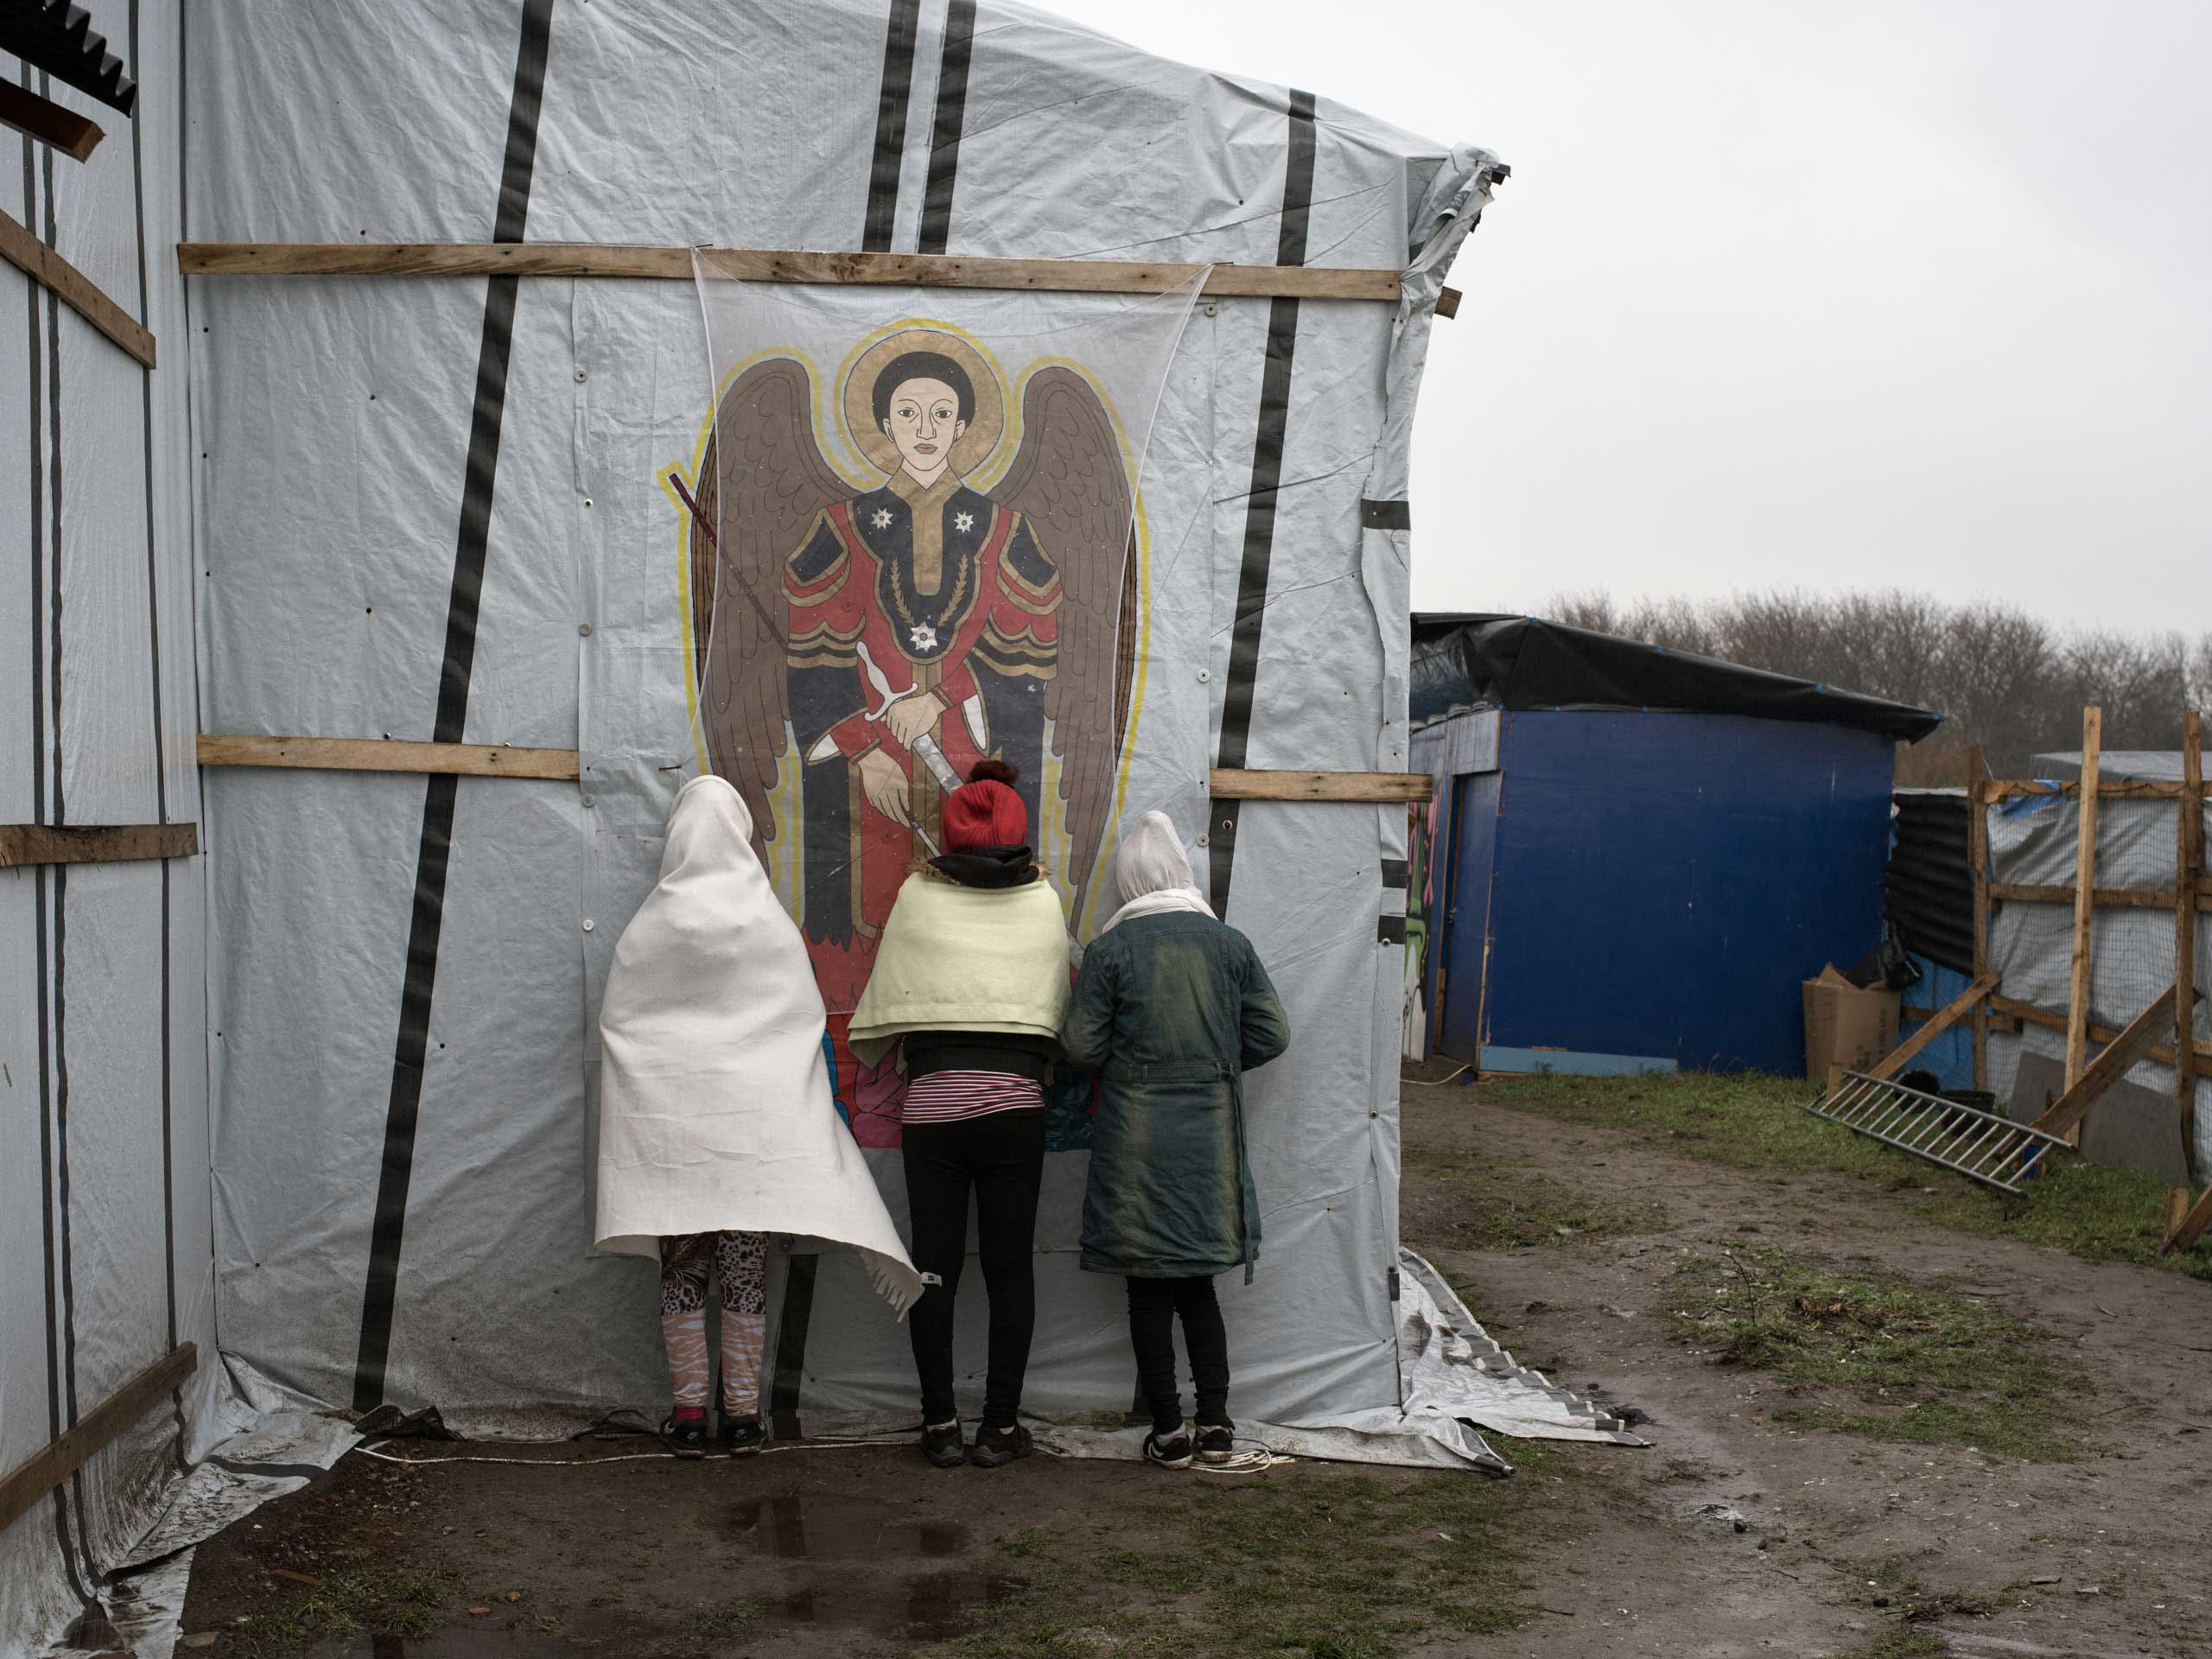 Orthodox Christians pray outside the makeshift church known as St. Michael's Calais  for the Ethiopian and Eritrean community in the  jungle  of Calais, France, Nov. 24, 2015.